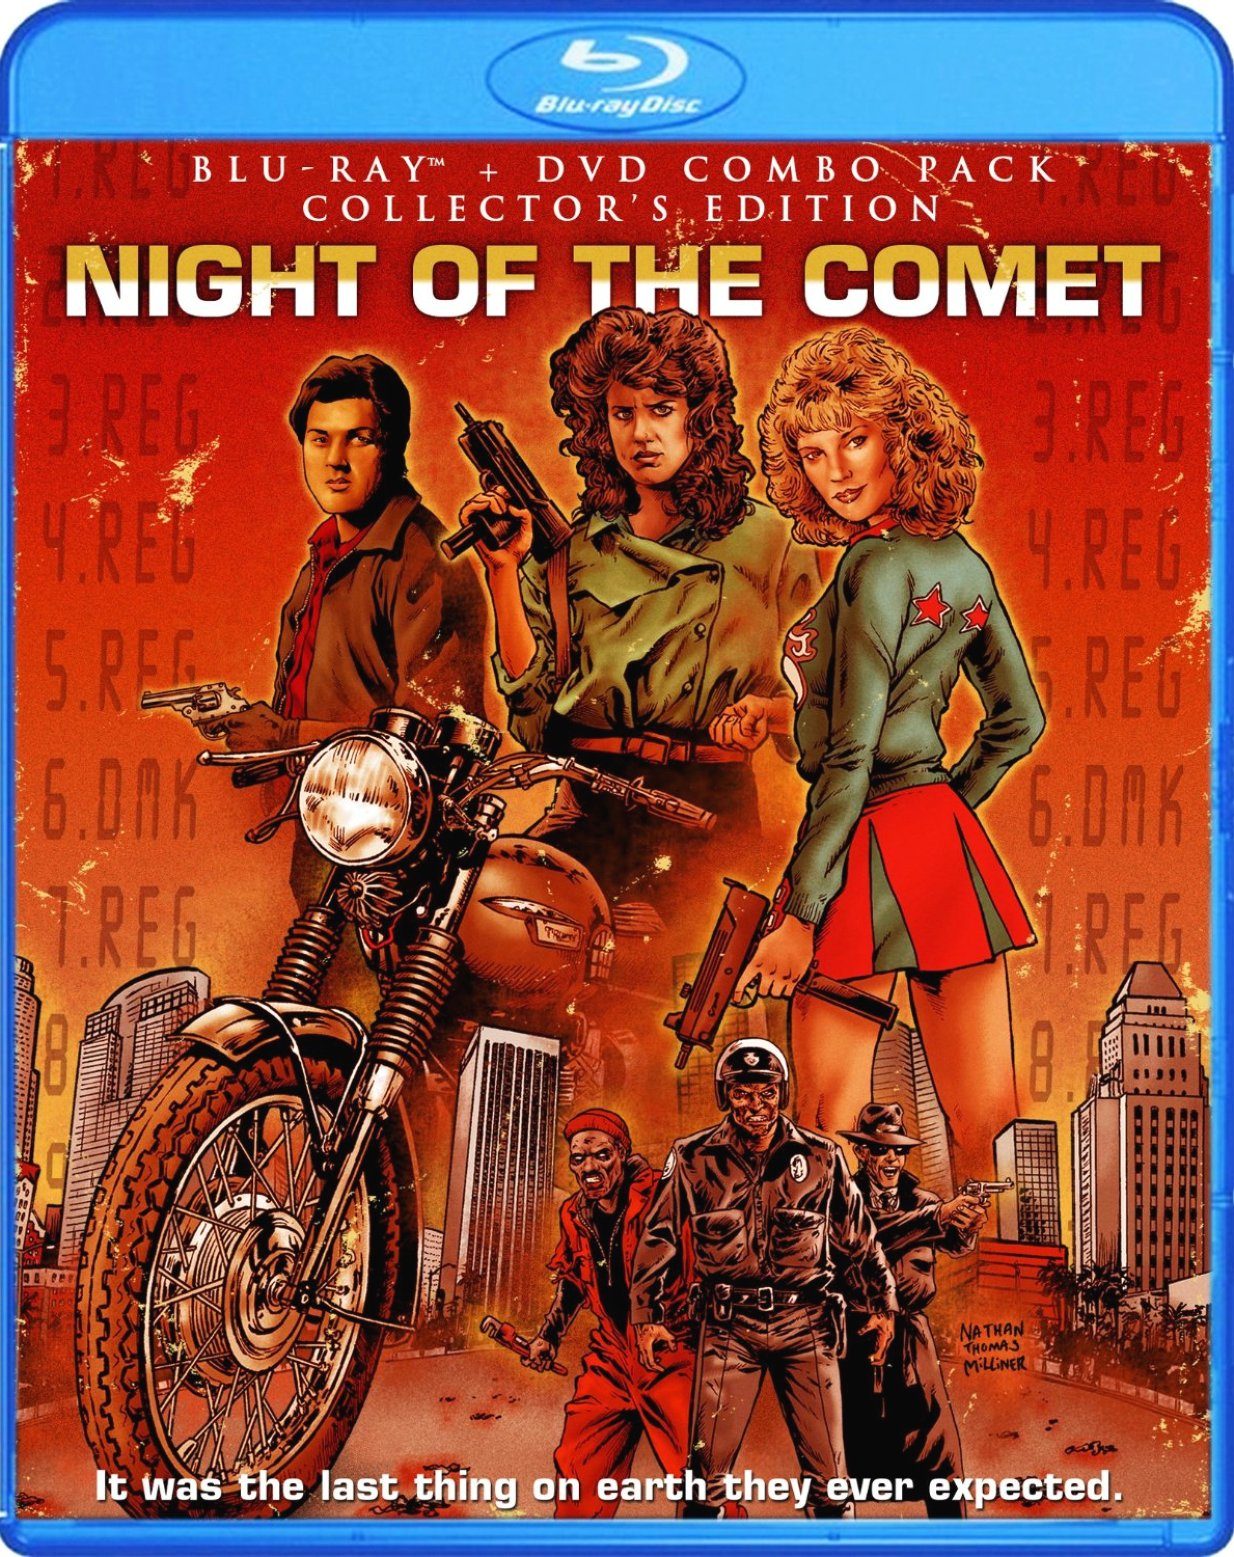 night of the comet blu-ray dvd 00a